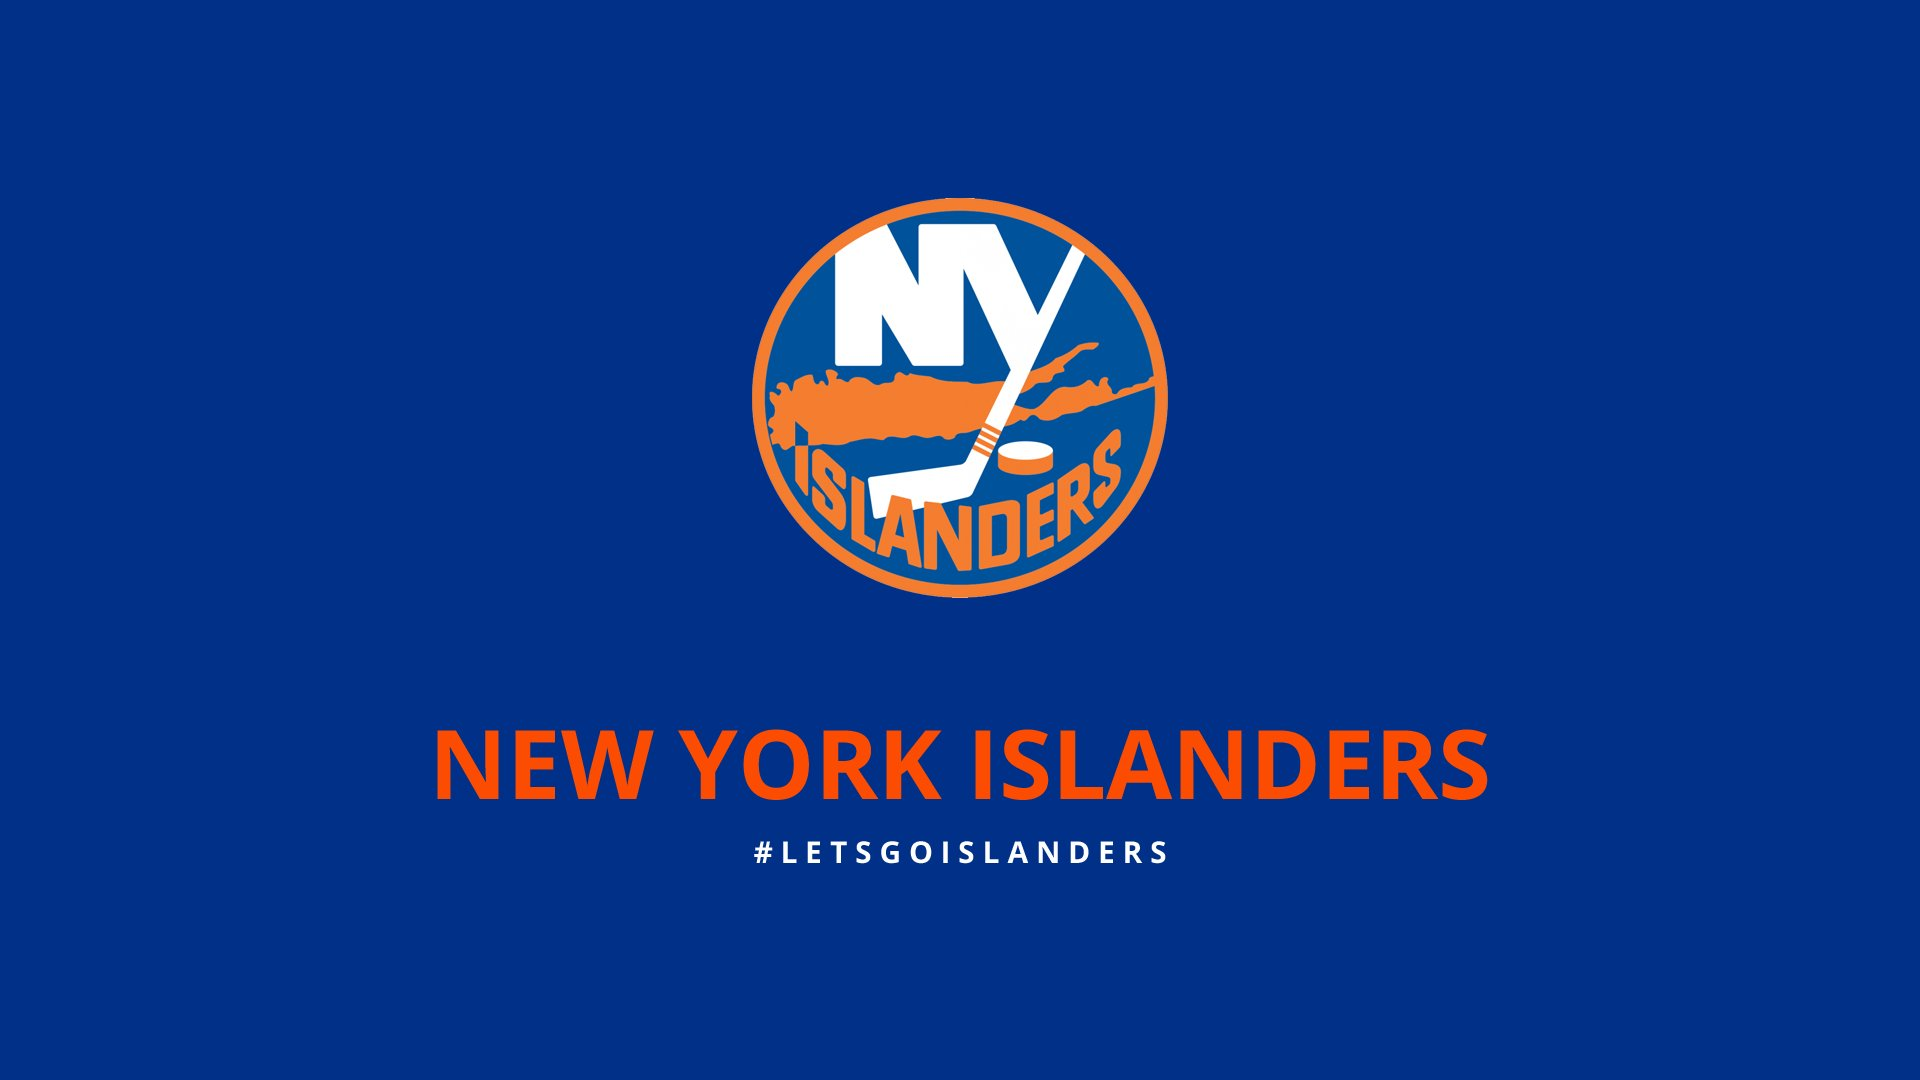 NEW YORK ISLANDERS hockey nhl 3 wallpaper 1920x1080 1920x1080